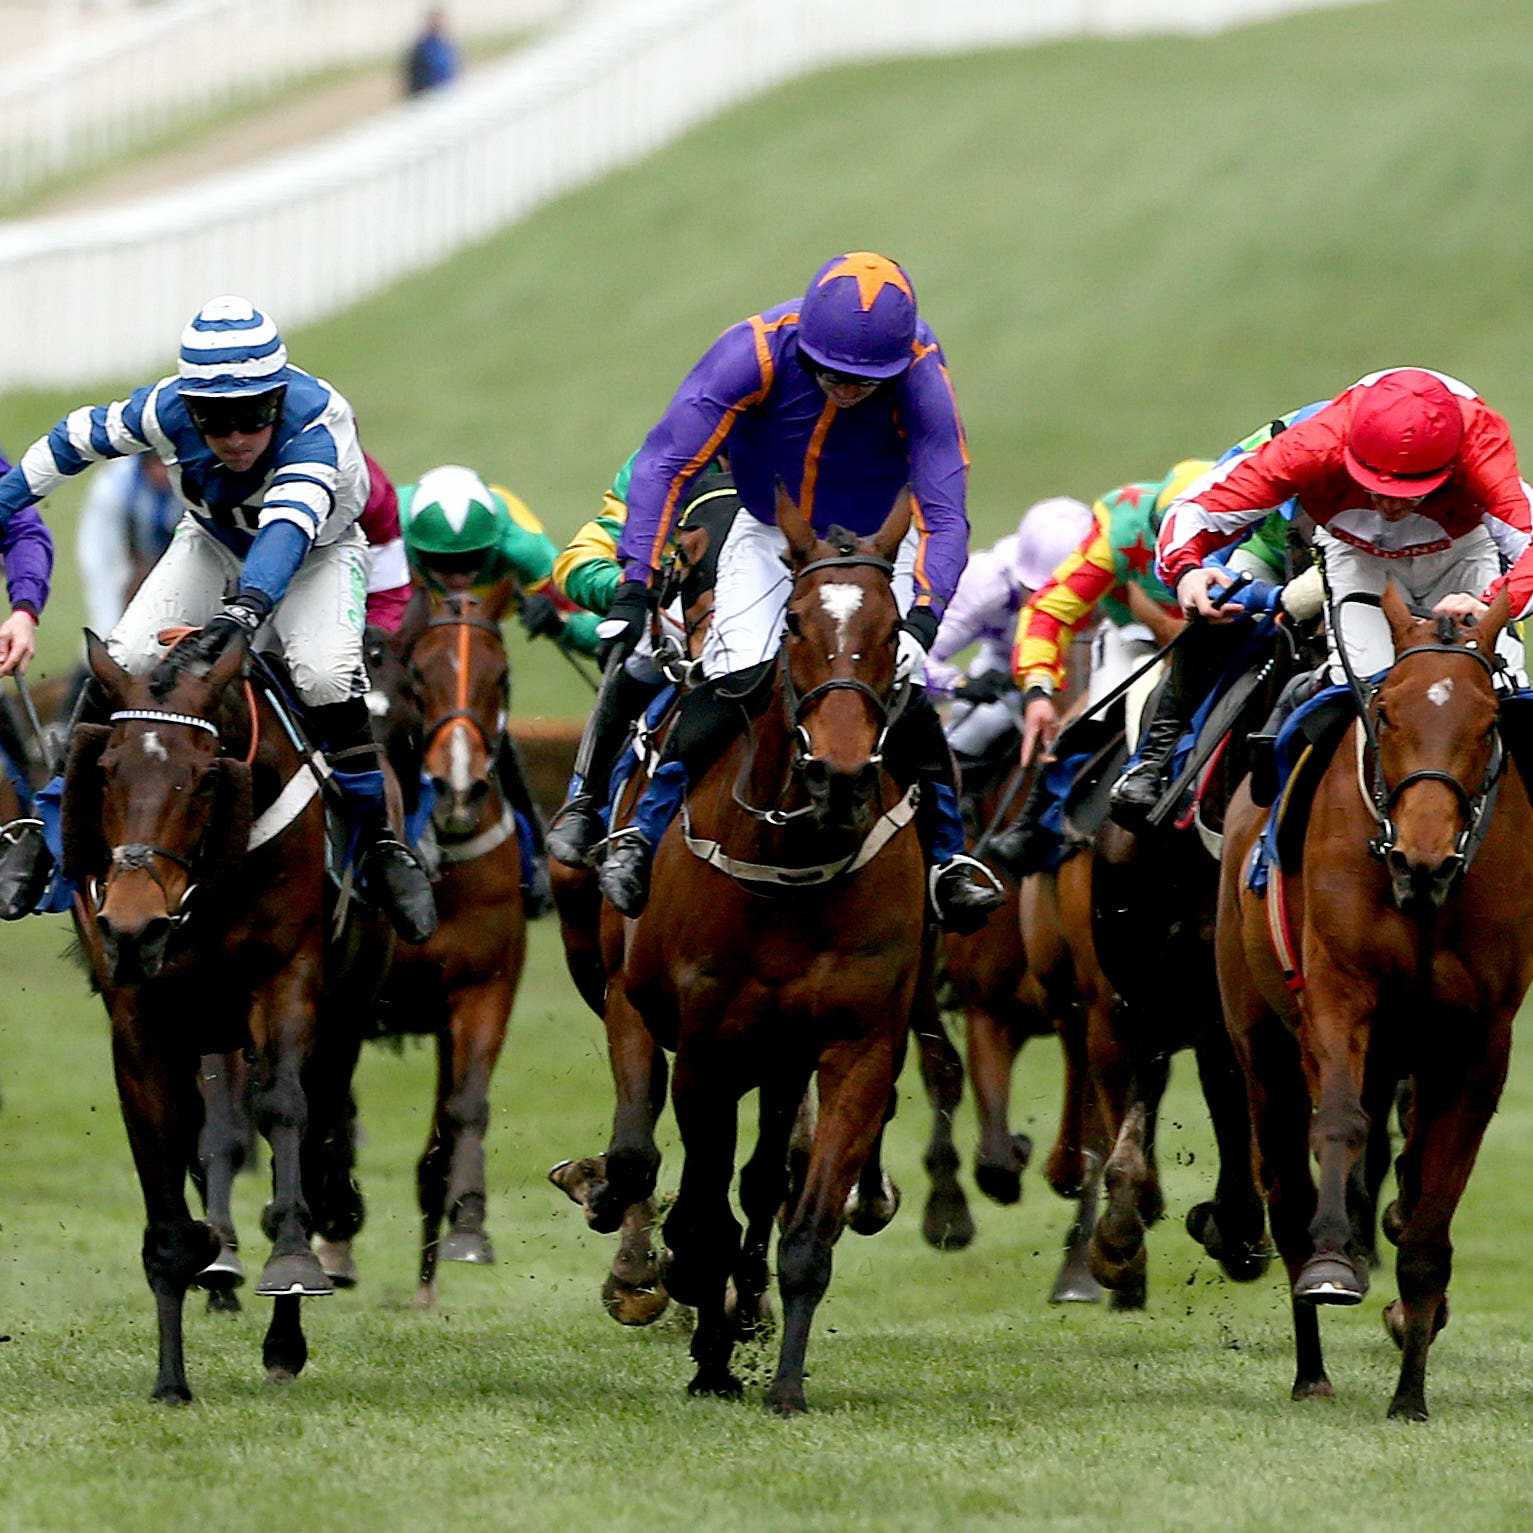 William Henry (blue and white) flashes home to win the Coral Cup